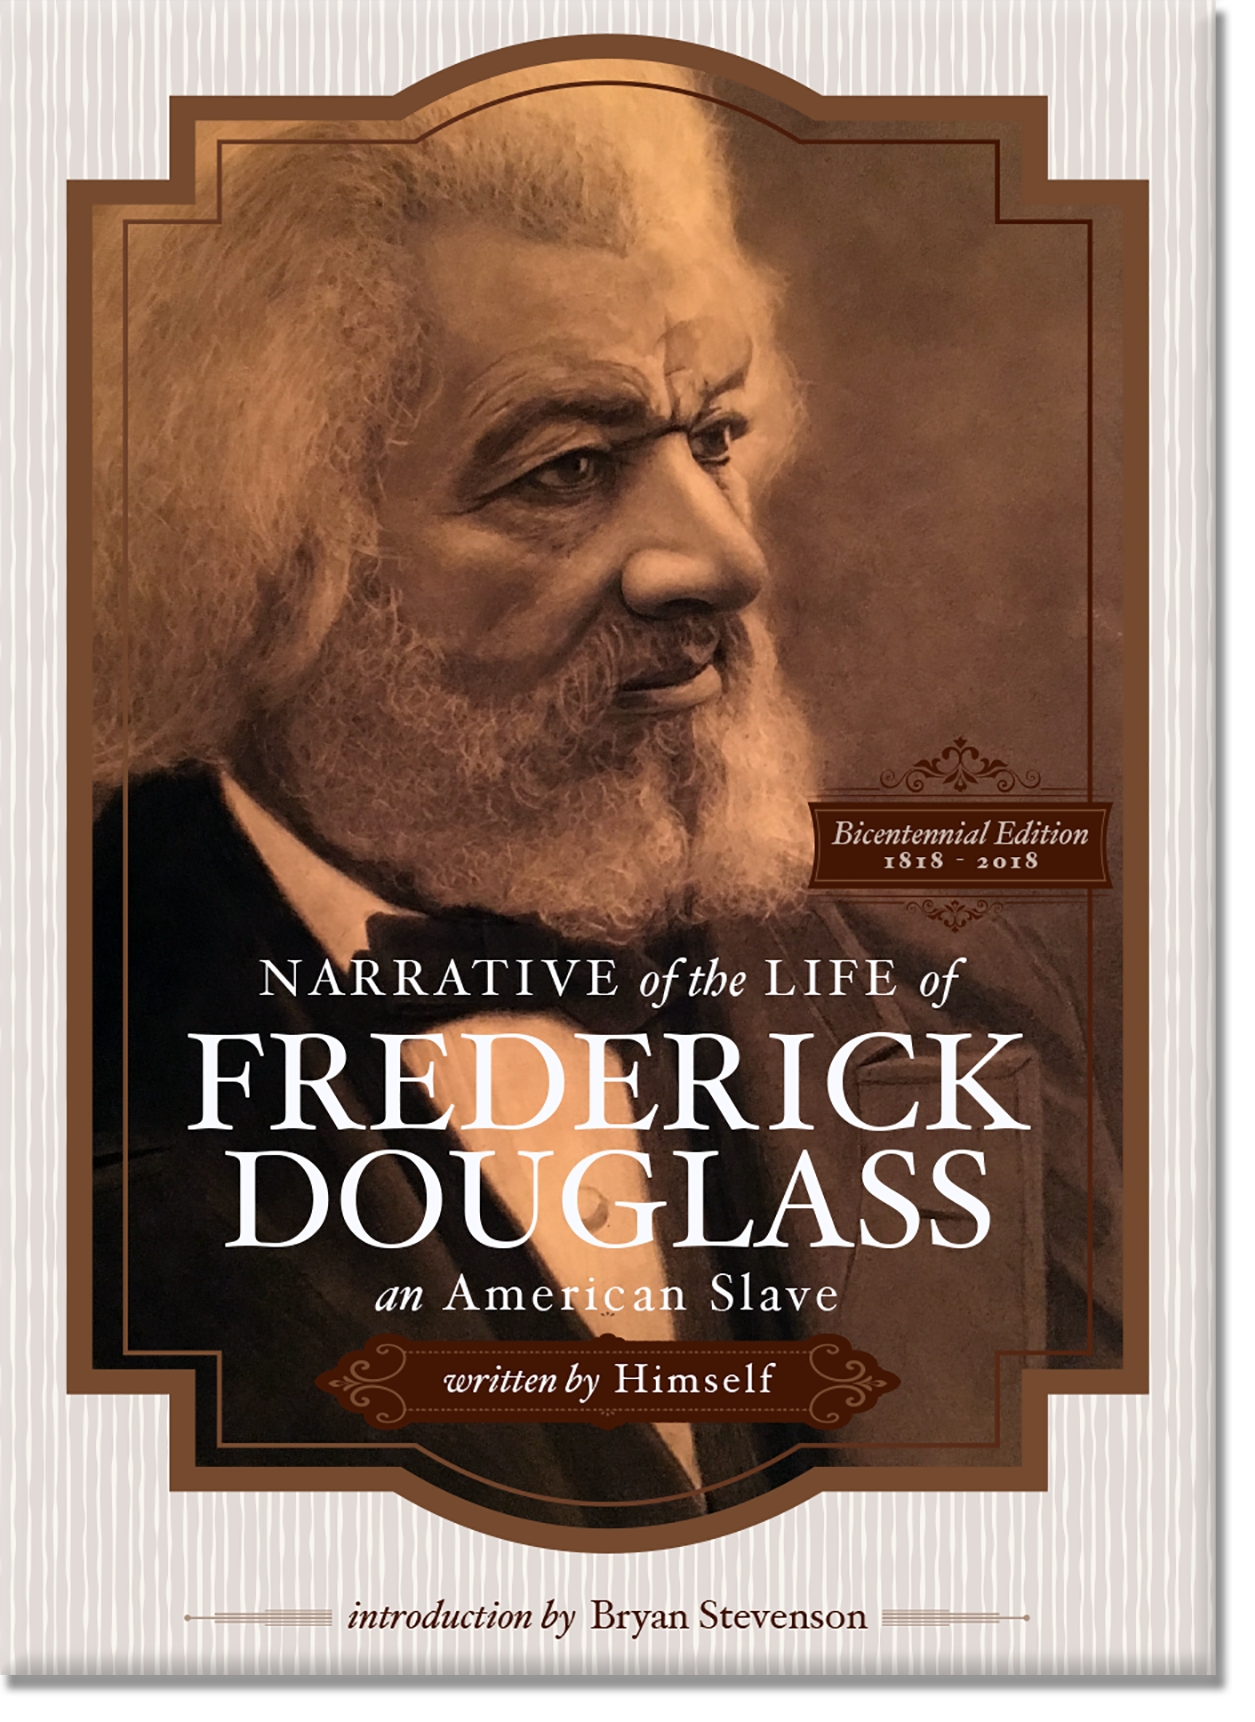 douglass essay frederick life narrative